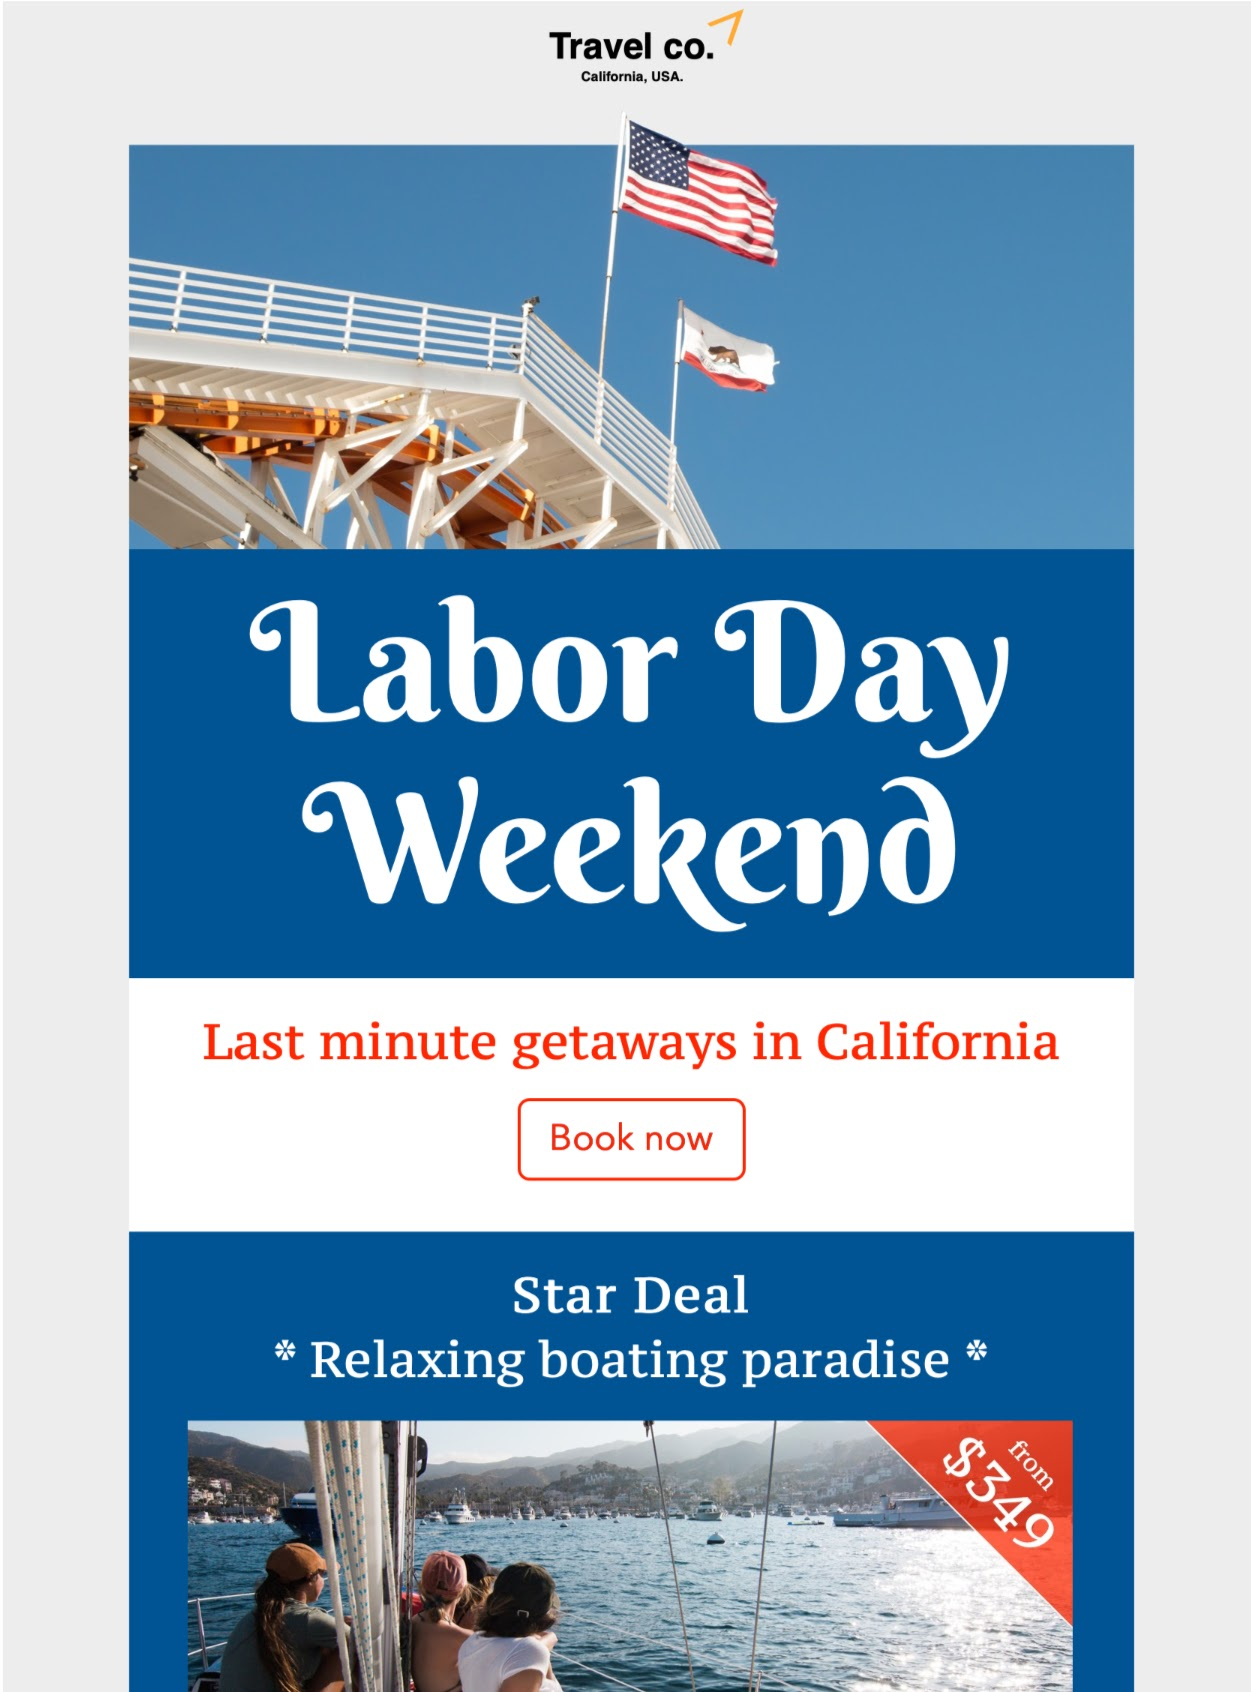 Email example from Travel Co.